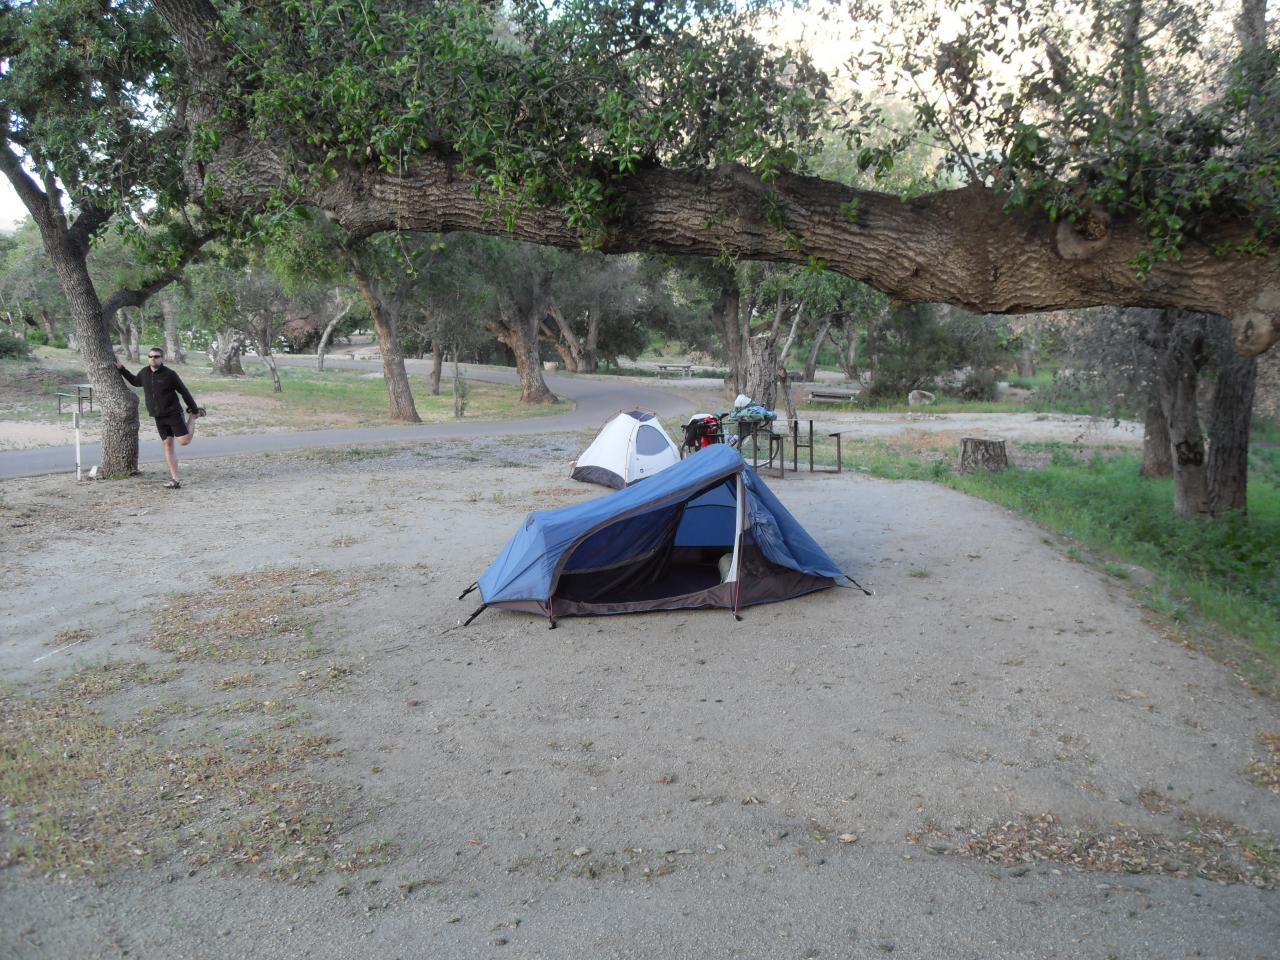 Camping the first night at Ma Tar Awa campground near Viejas after riding 65 miles uphill